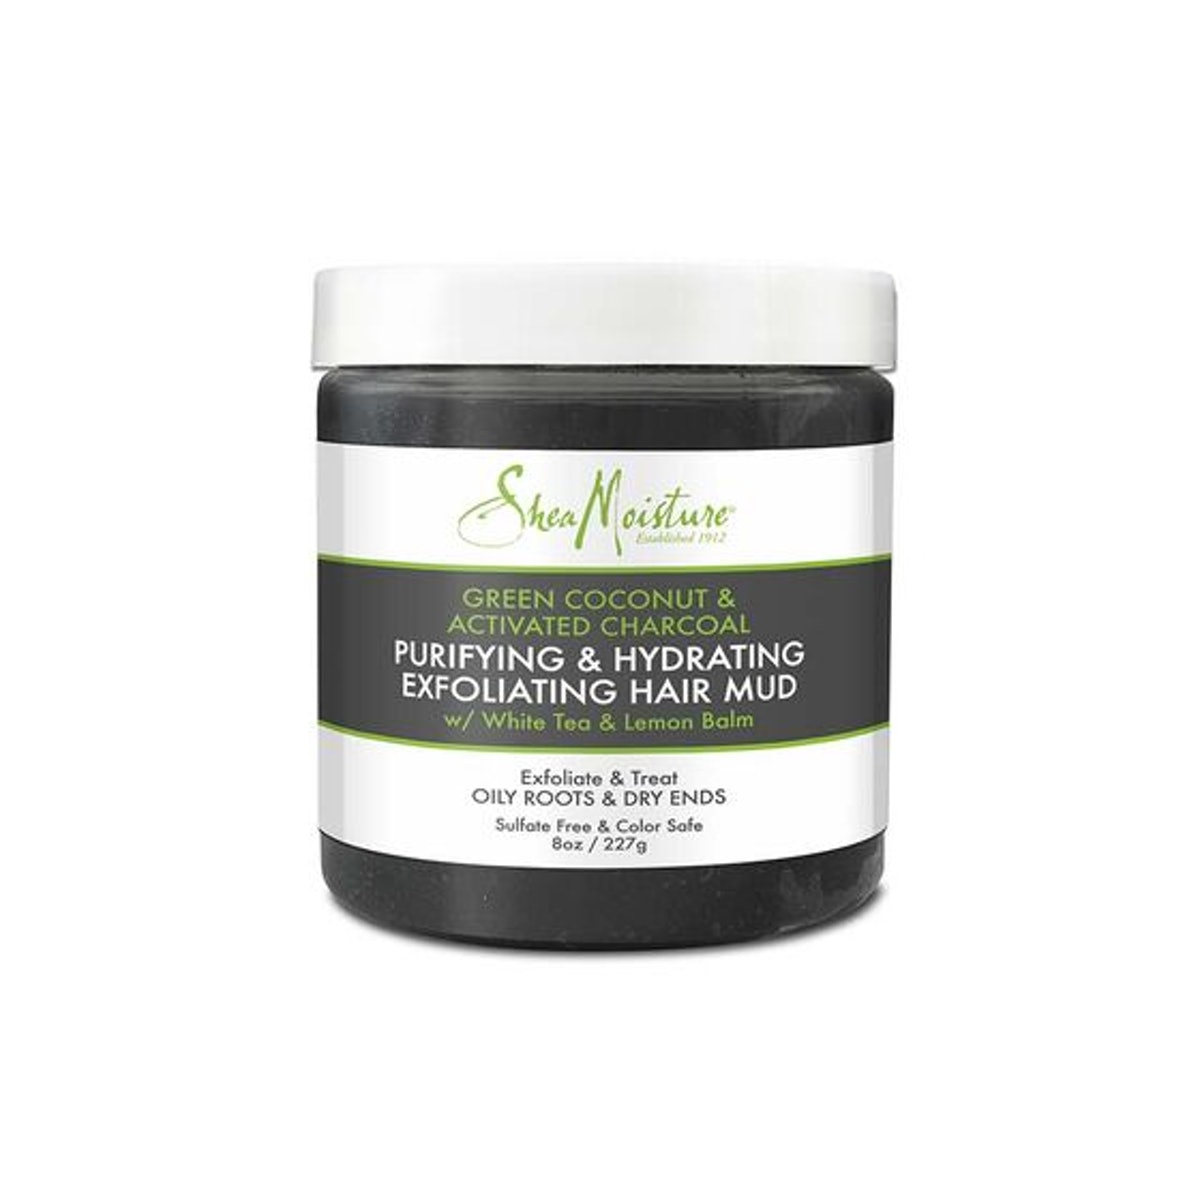 Green Coconut & Activated Charcoal Exfoliating Hair Mud